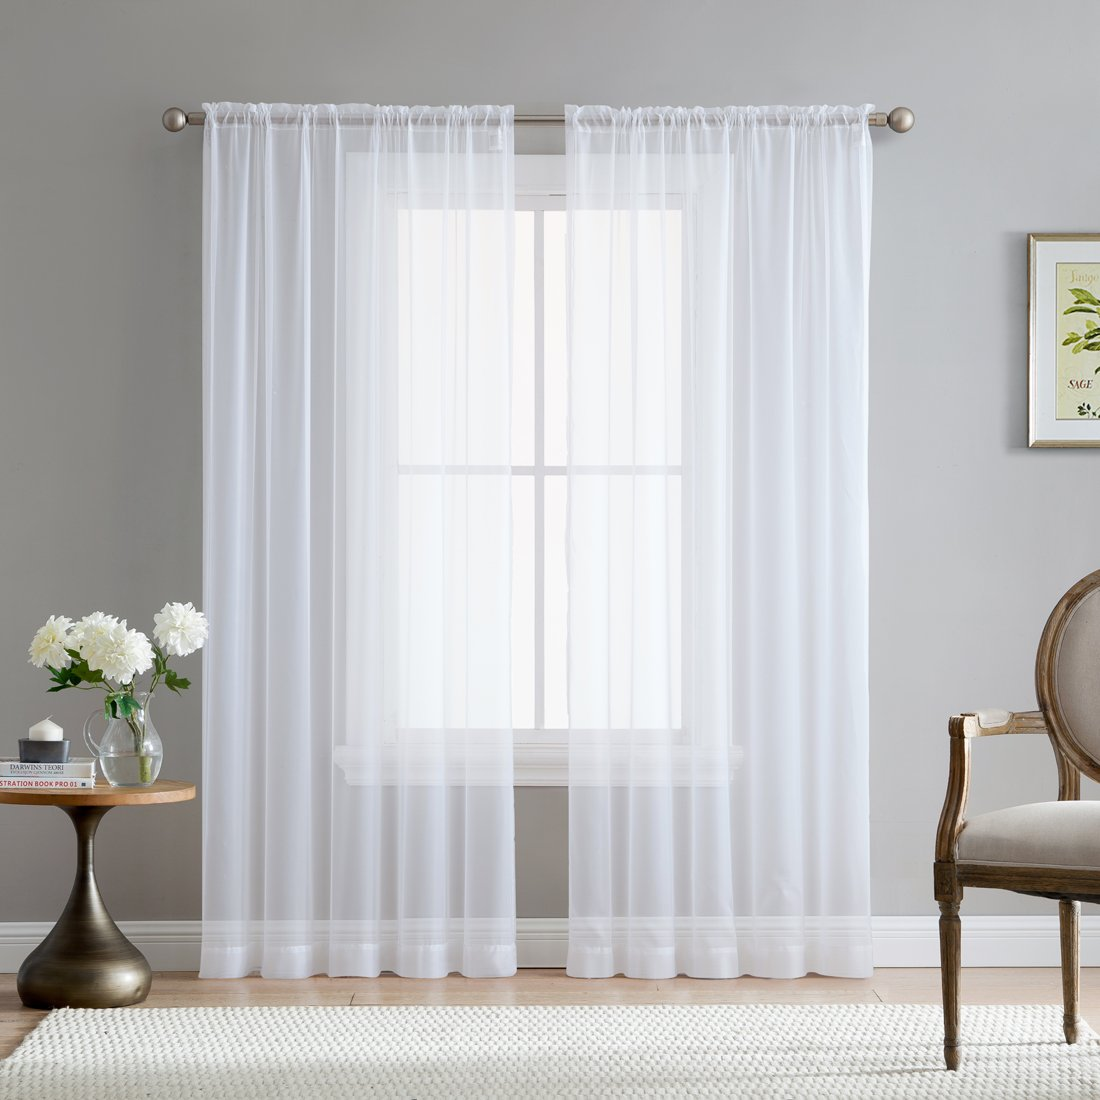 Curtain Colors For Grey Walls 18 Ideas Ideas And Buying Guide